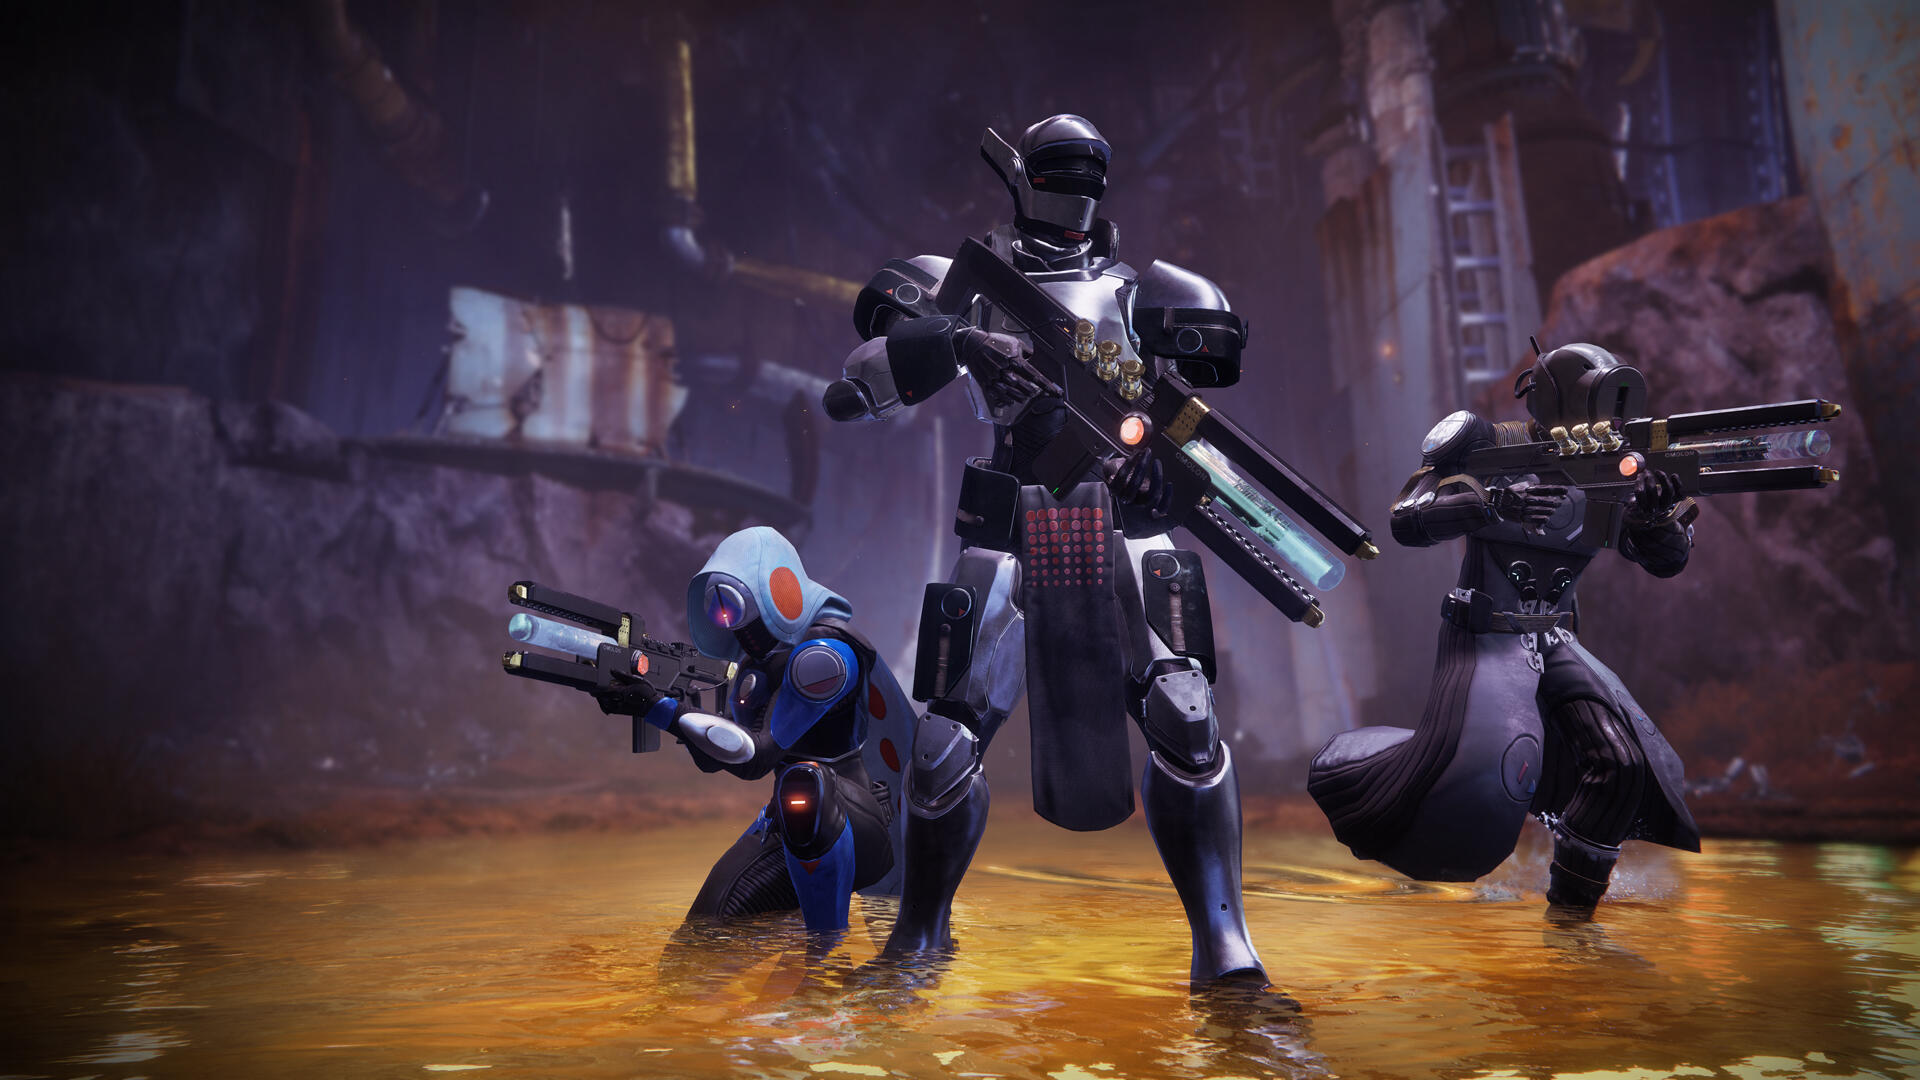 Destiny 2's Console Players Are Having a Fun, Disastrous Time Switching to PC